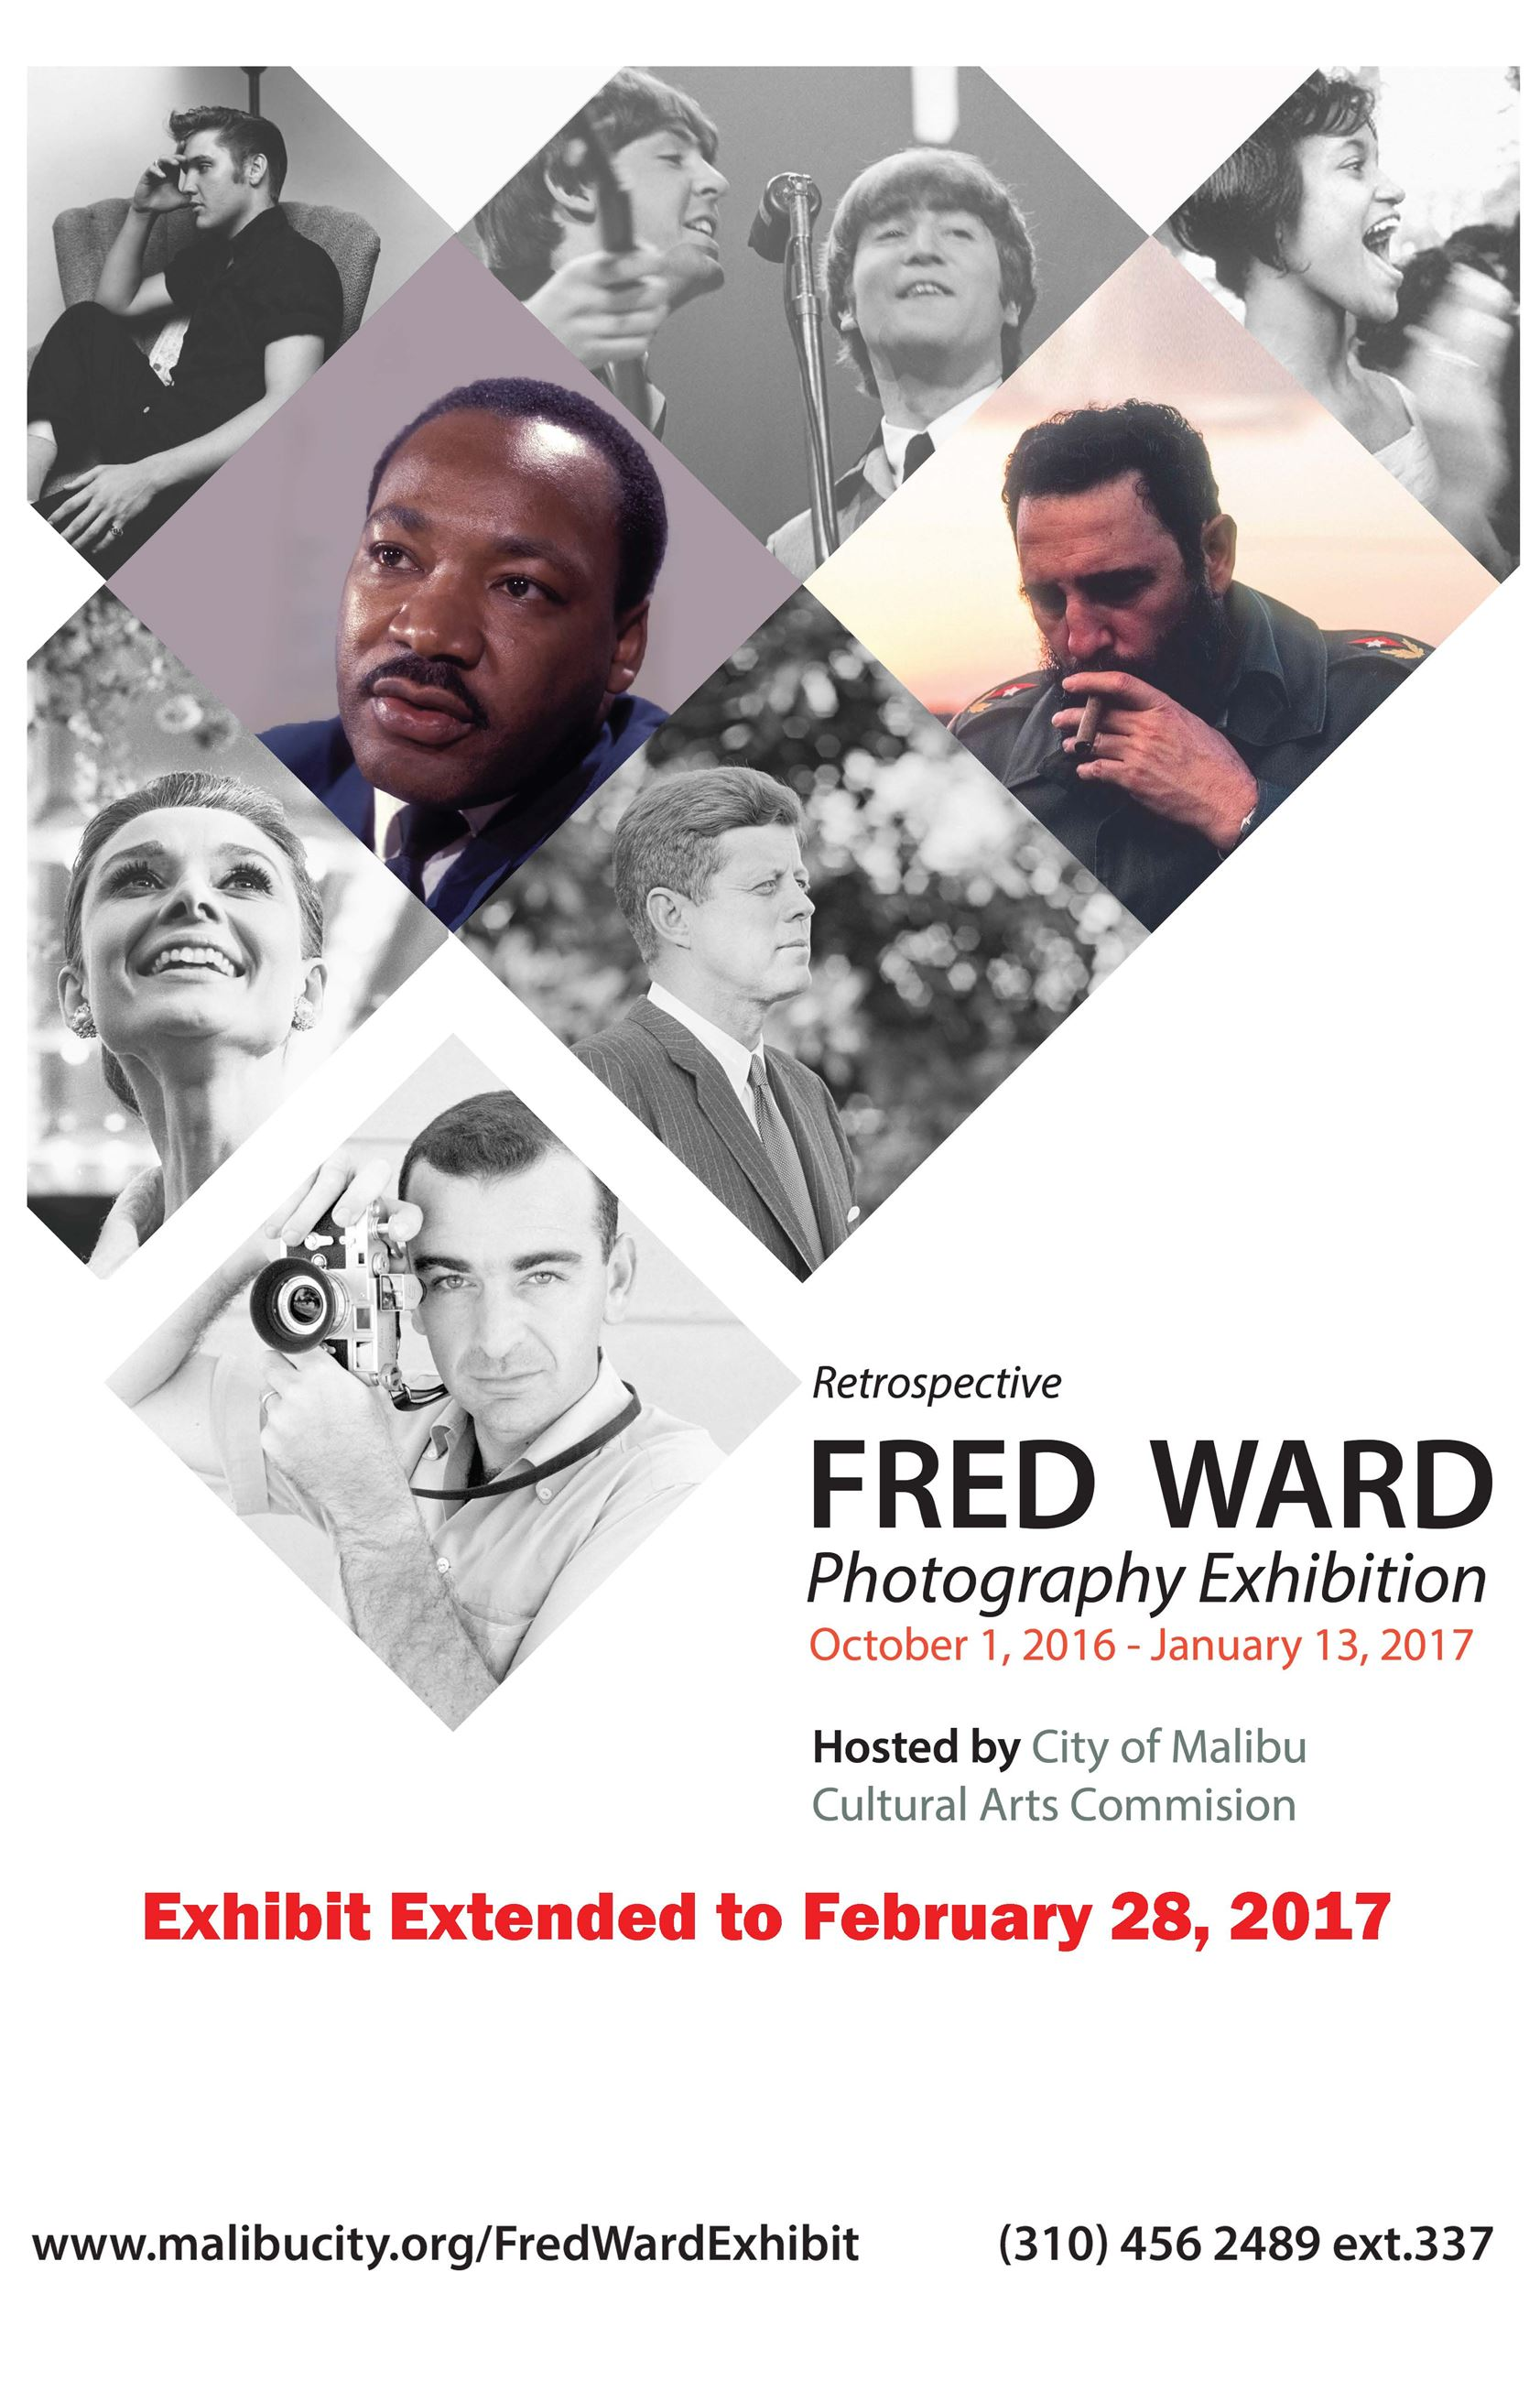 fred ward print poster exhibit extended